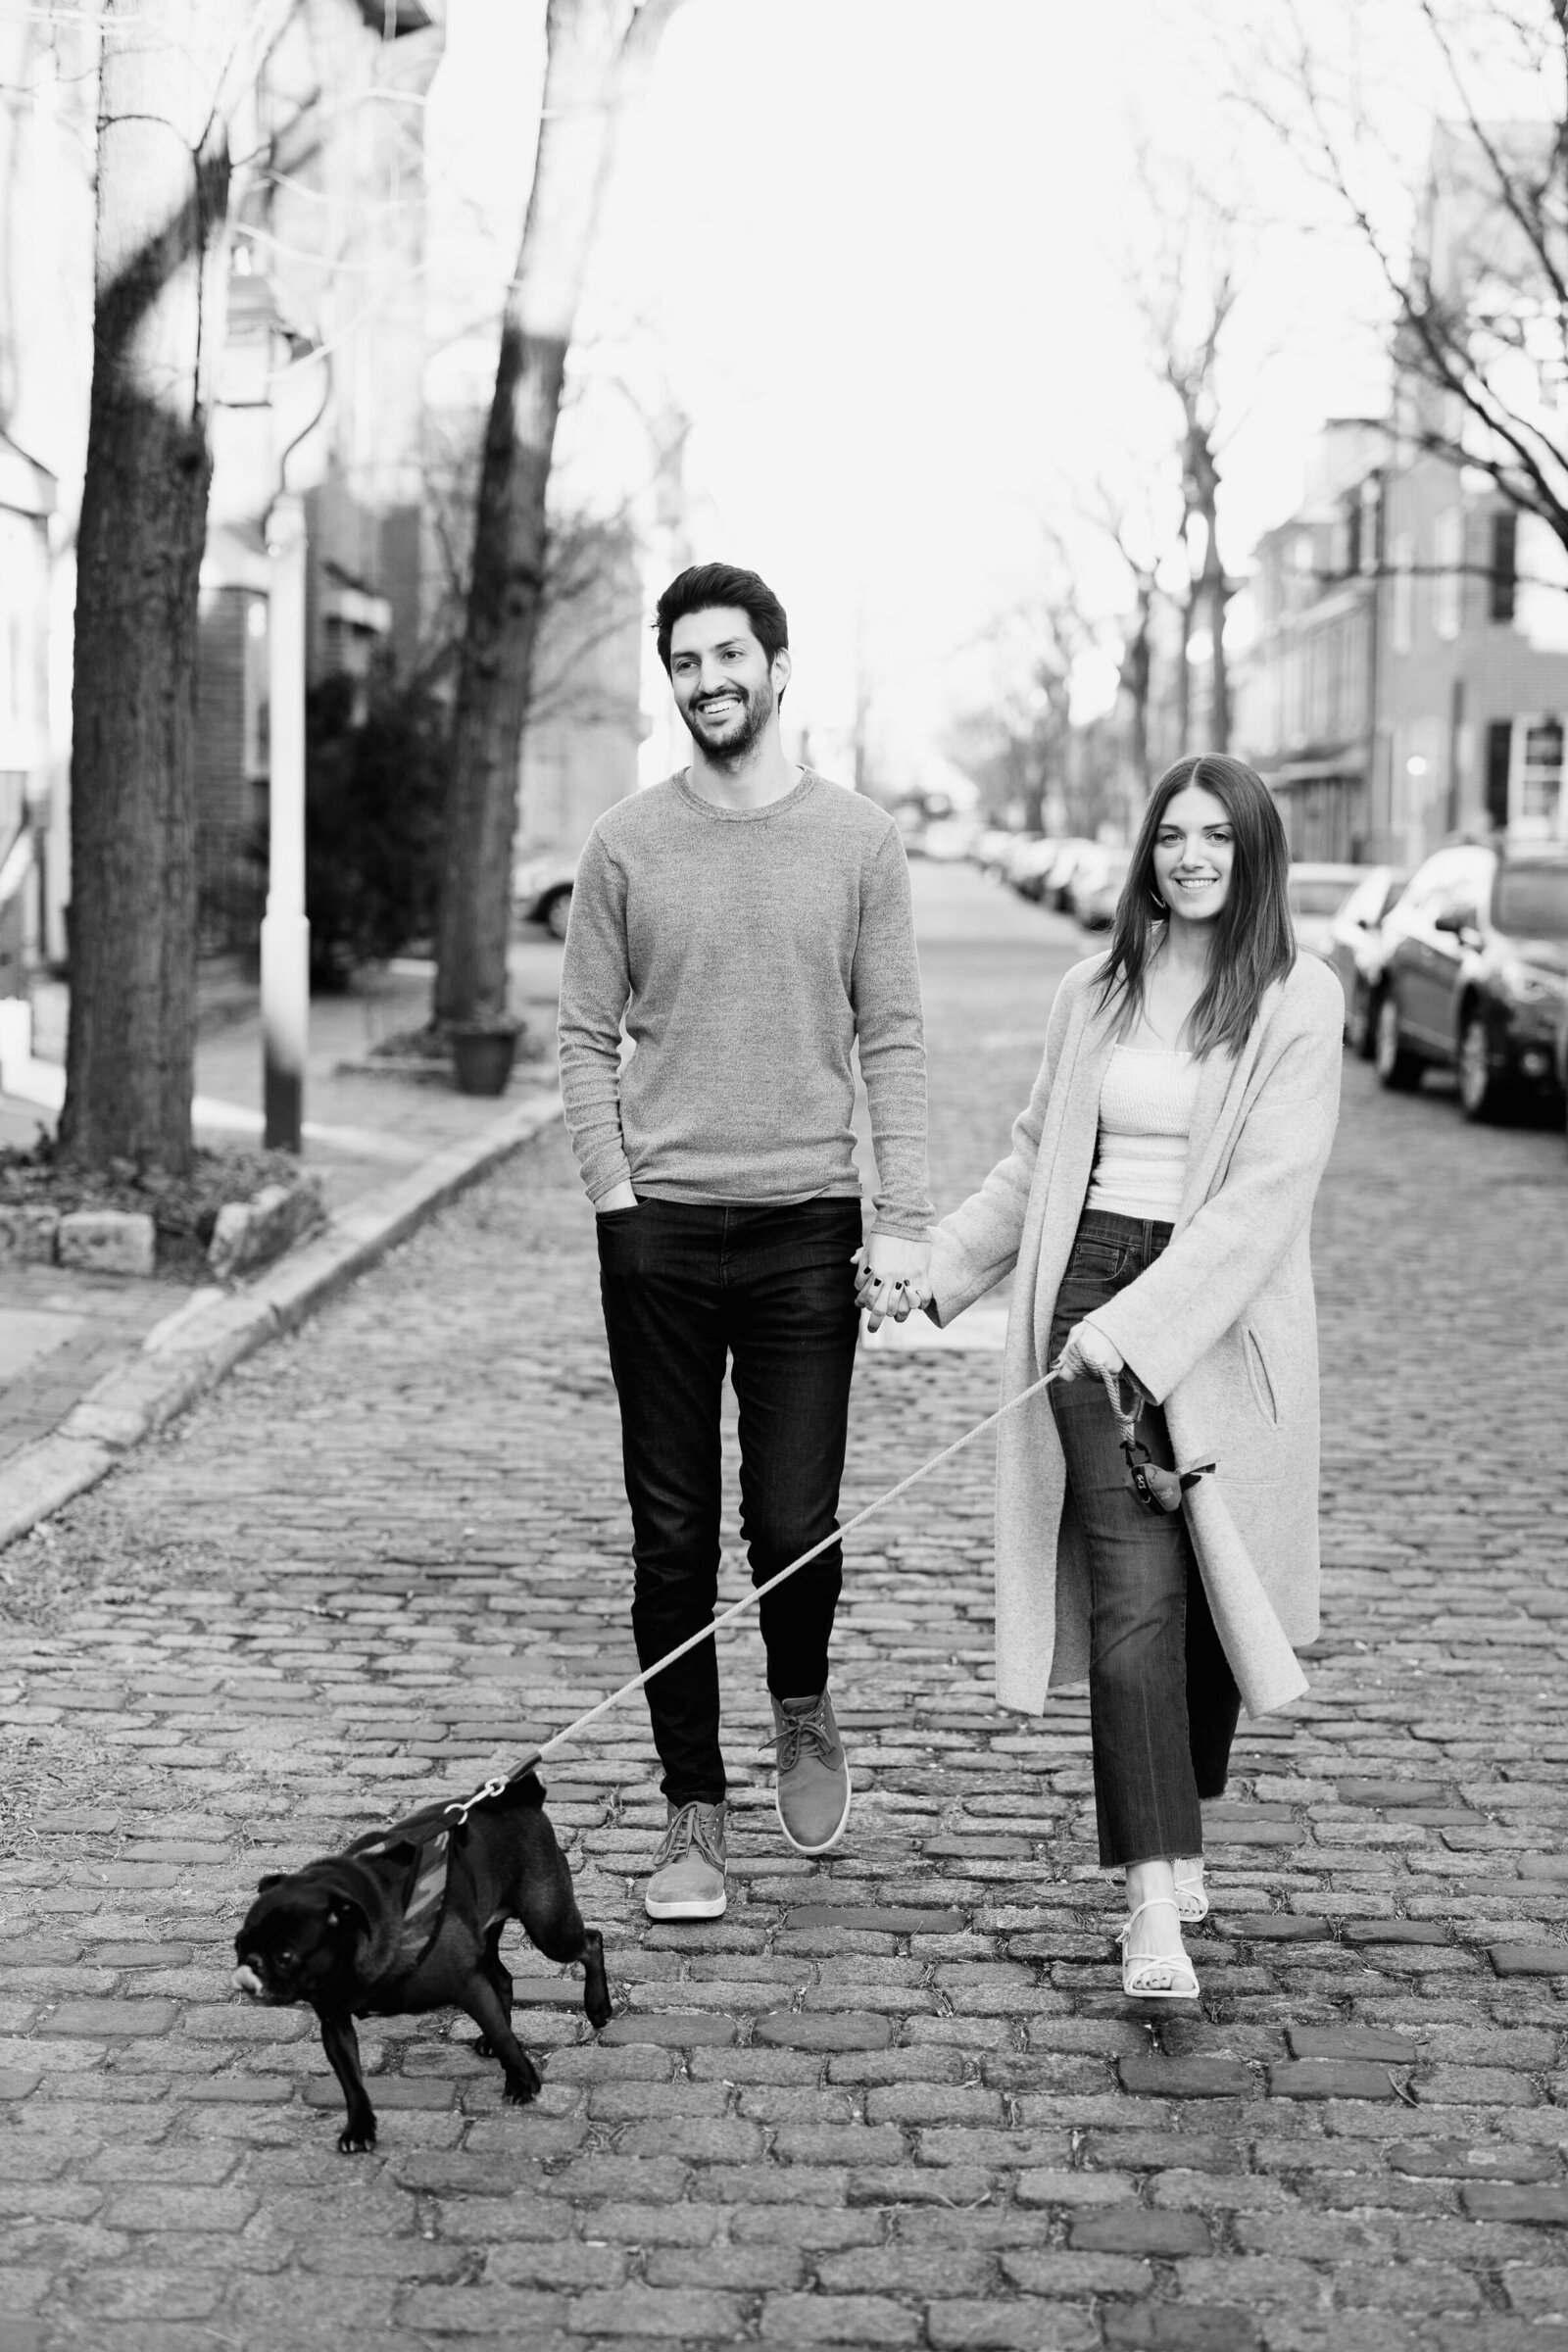 couple in city street with dog